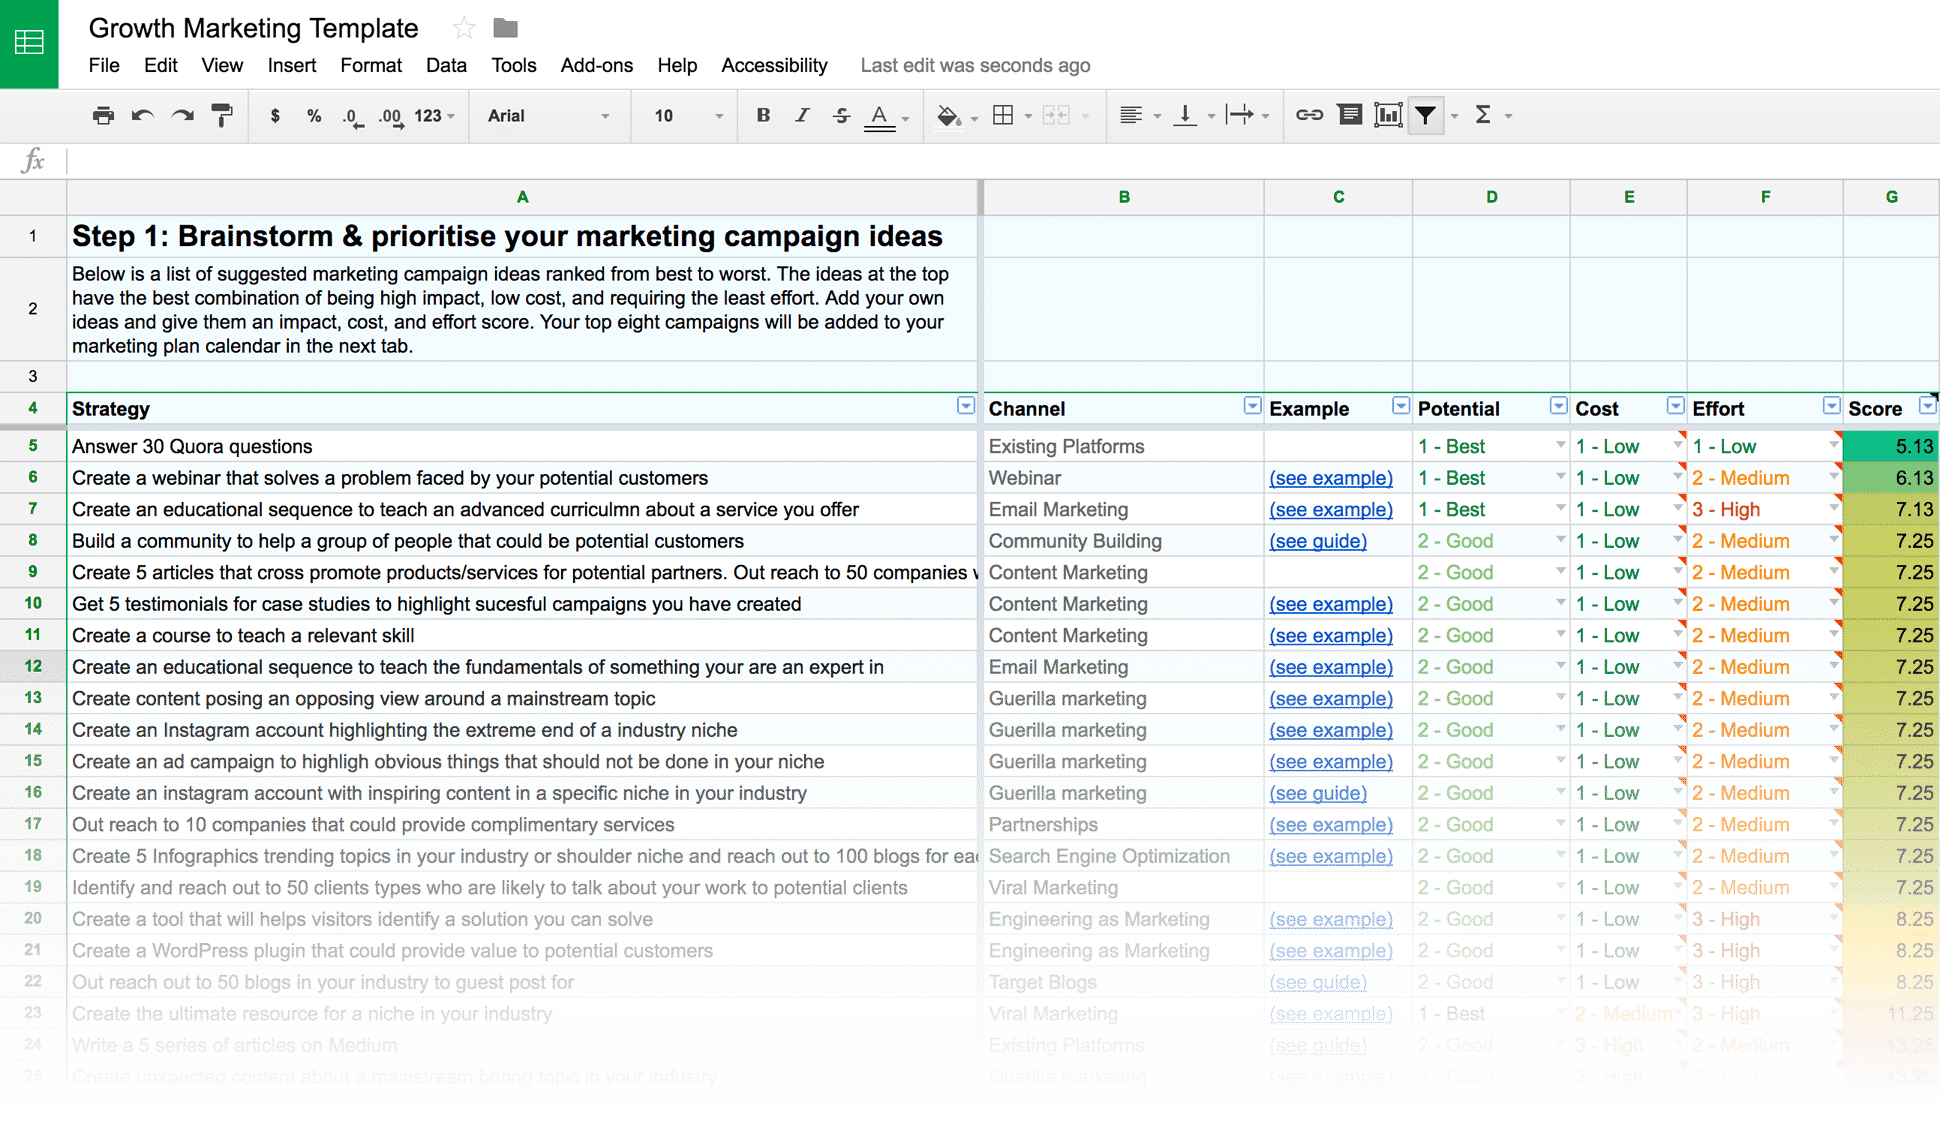 Free Digital Marketing Plan Template Generator - by Venture Harbour